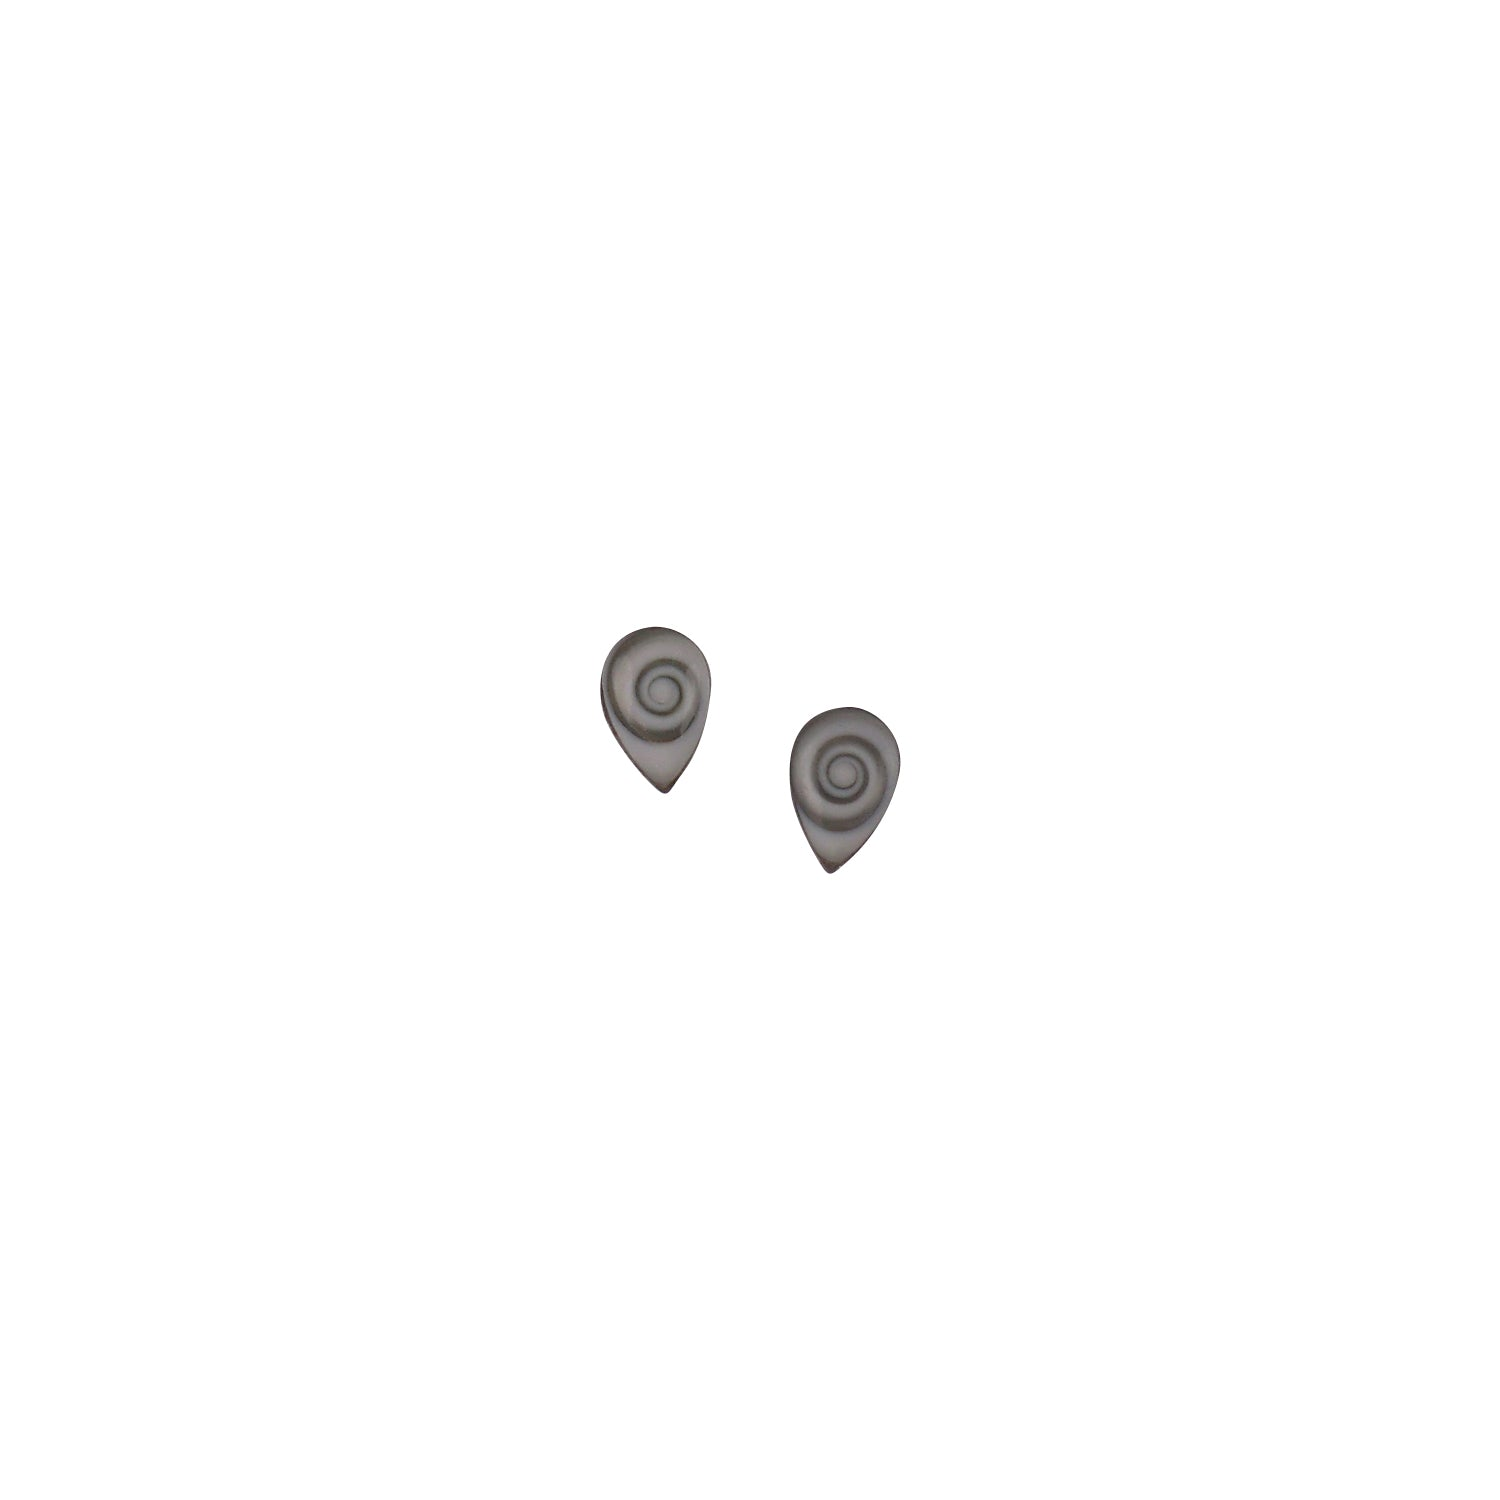 Teardrop Stud Earrings - Matico